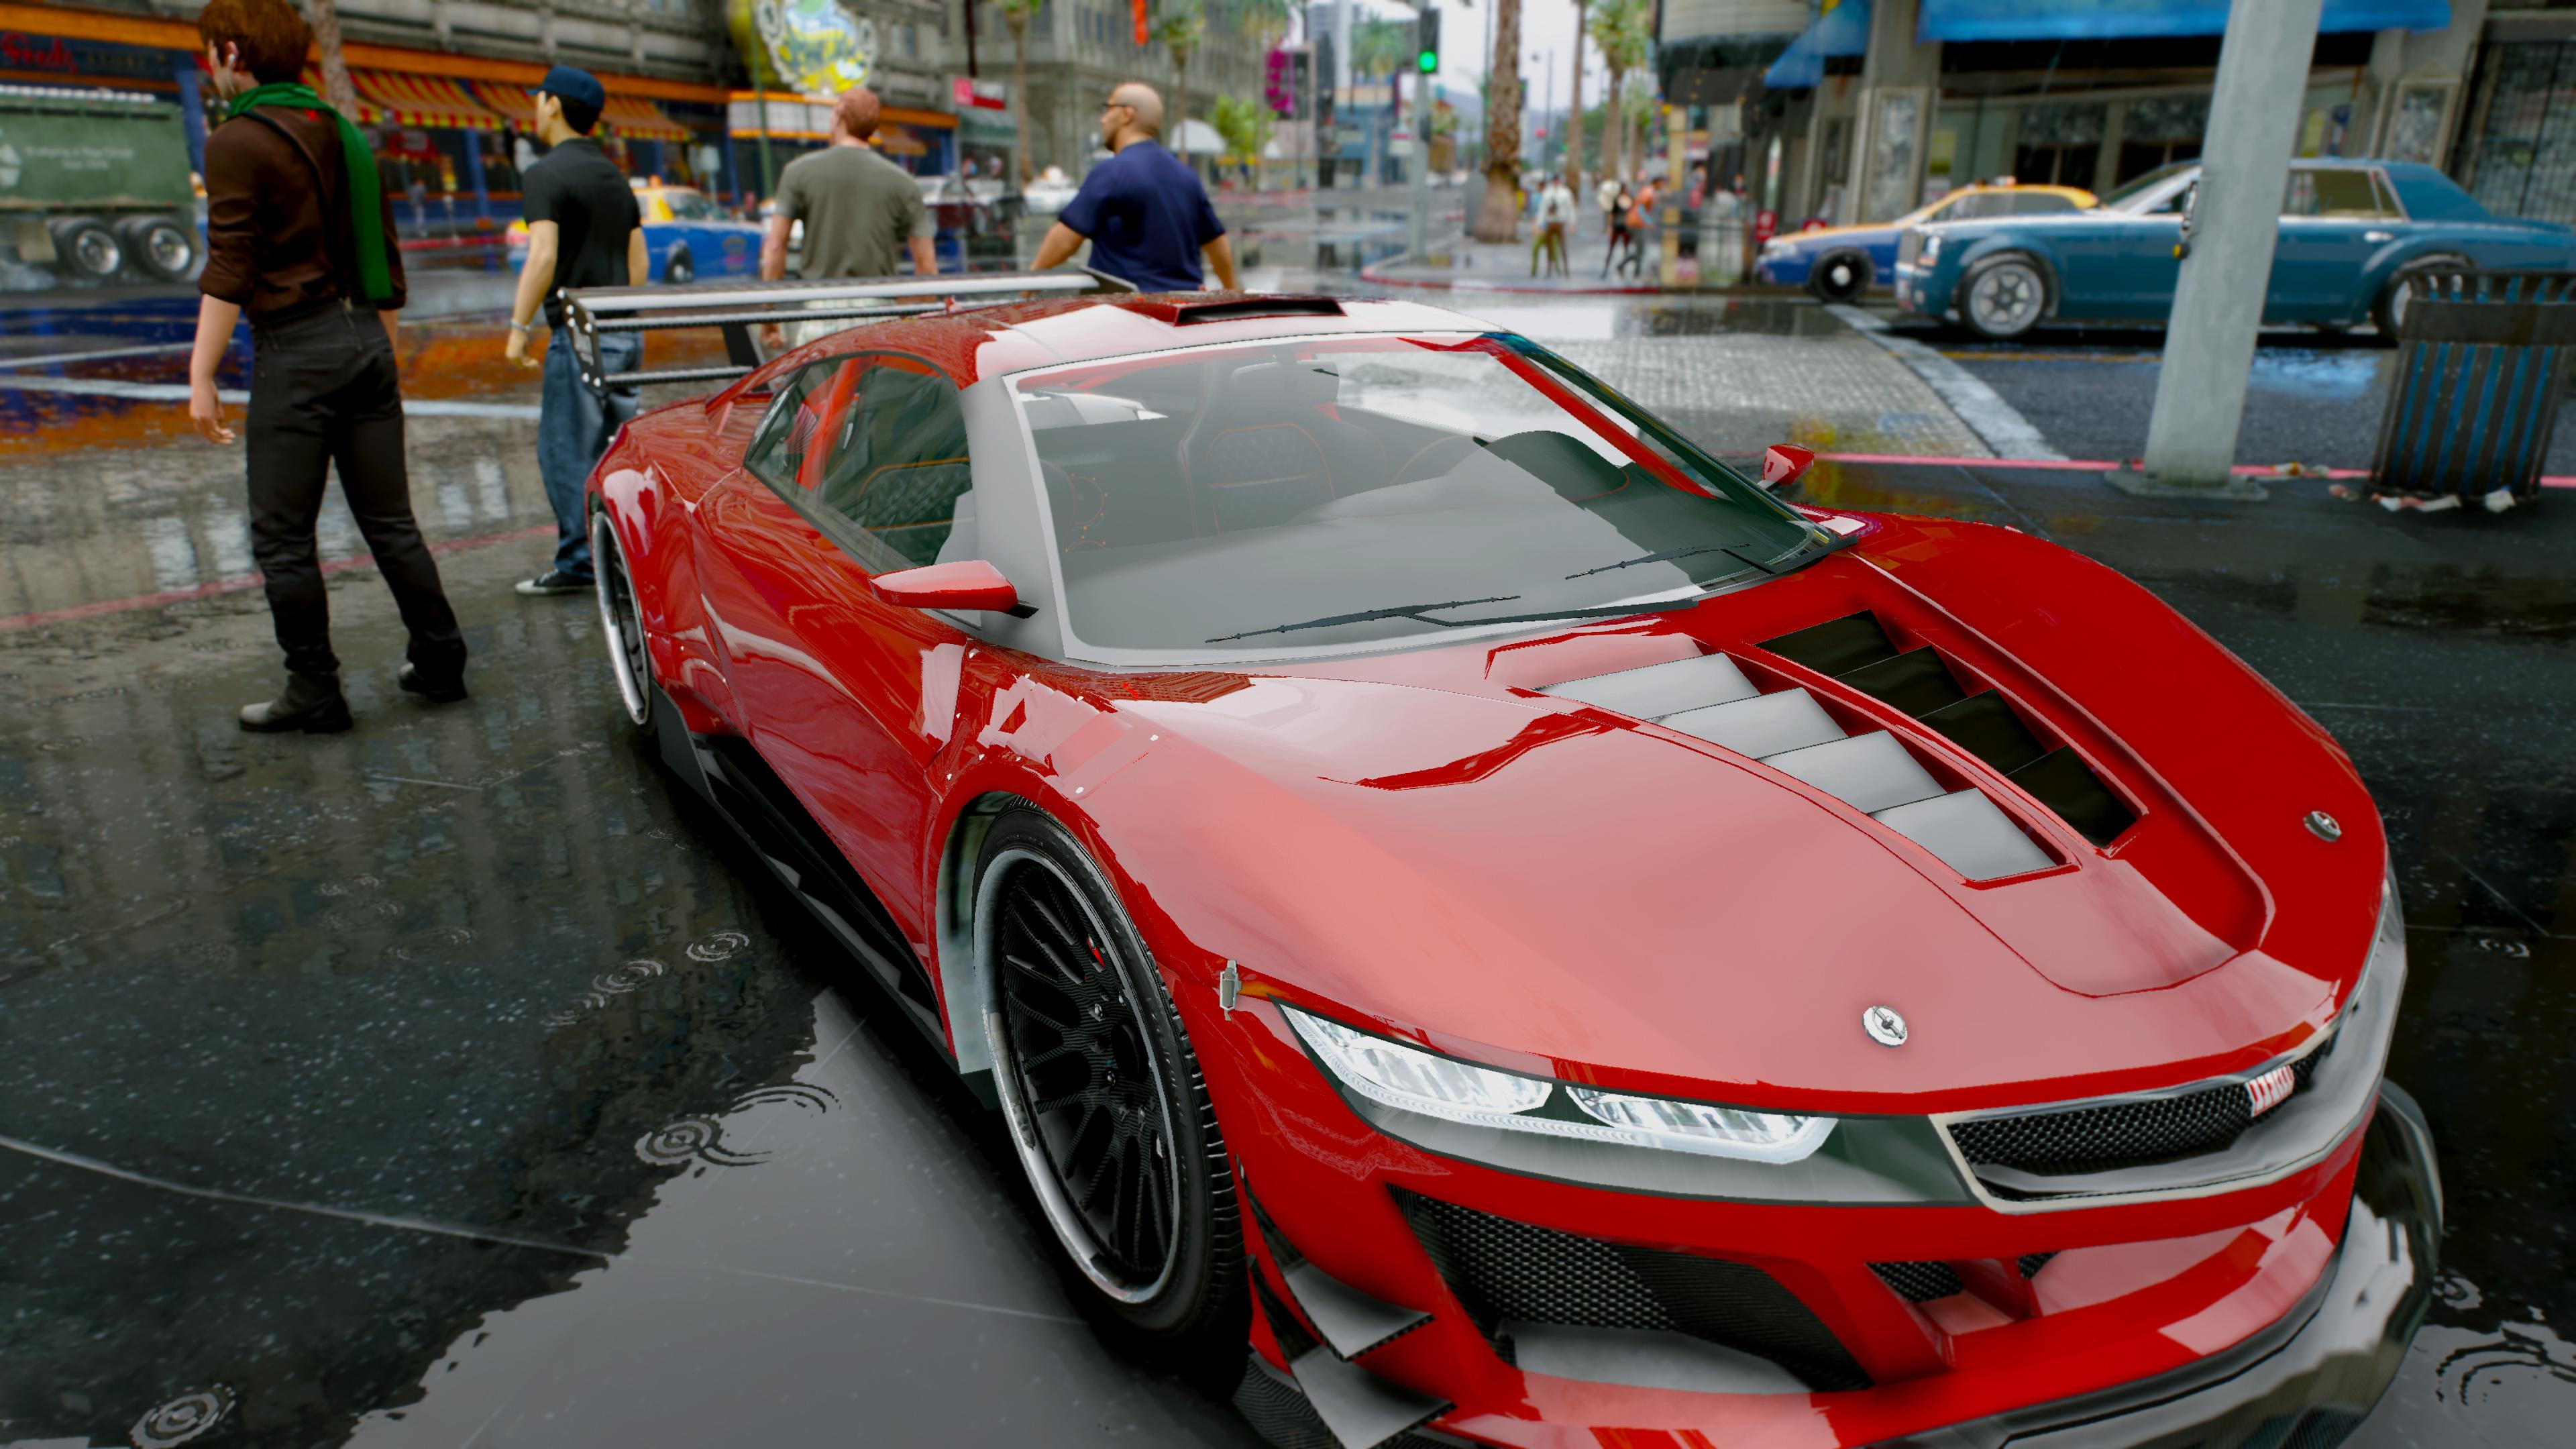 Awesome mod gives GTA V a massive graphics overhaul, makes it look like real life